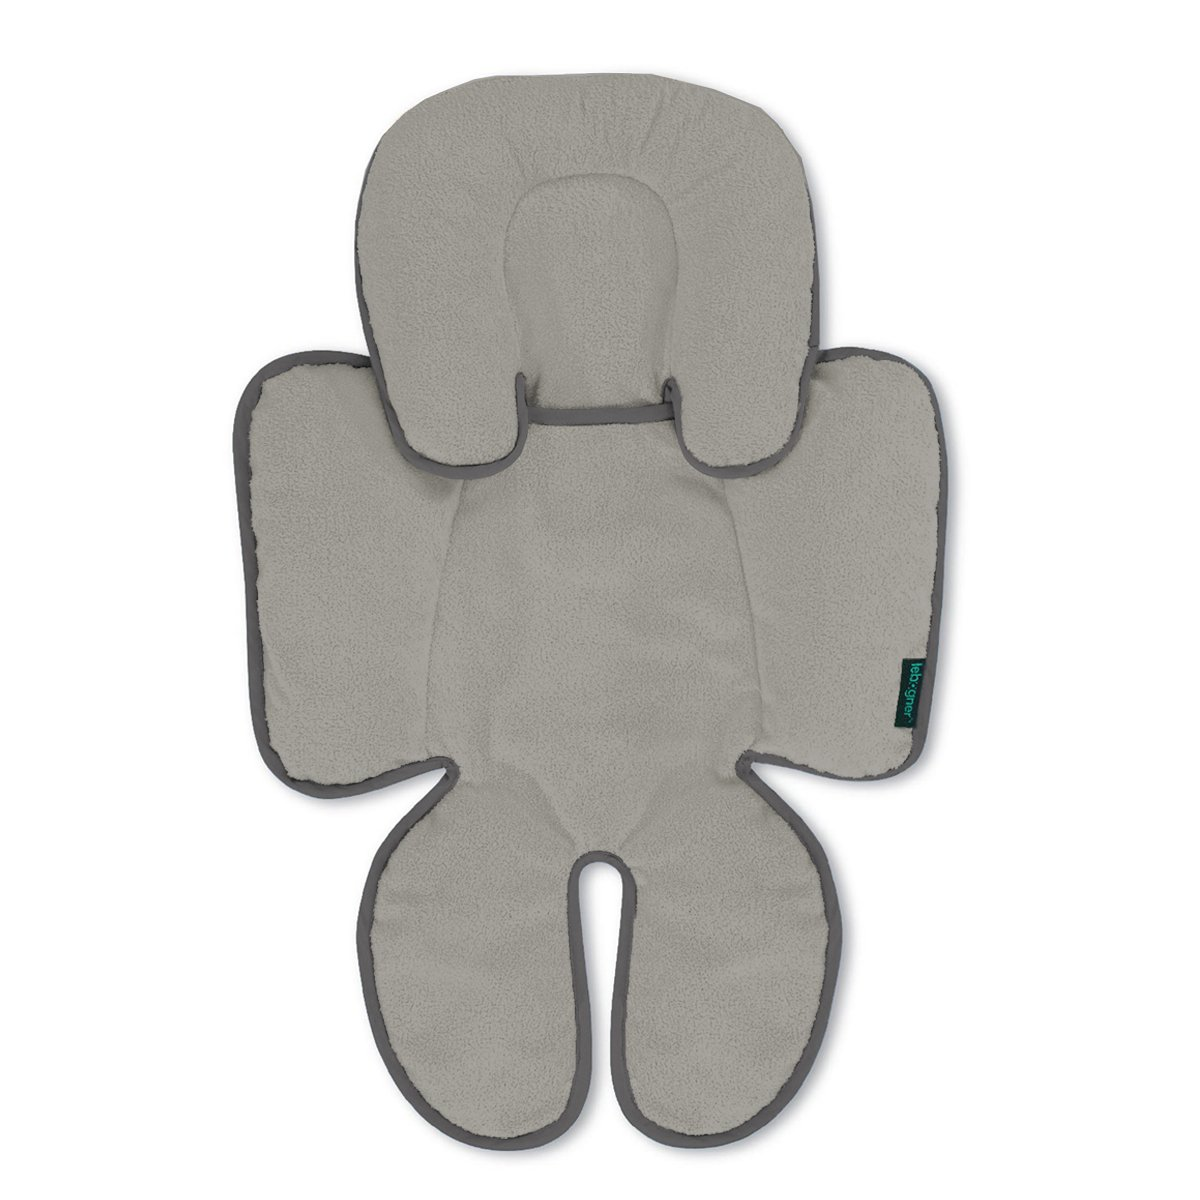 Head And Body Support Pillow By Lebogner - Infant To Toddler Head, Neck, And Body Cushion Perfect For Car Seats And Strollers, Detachable Head For Versatility As The Baby Grows, Grey